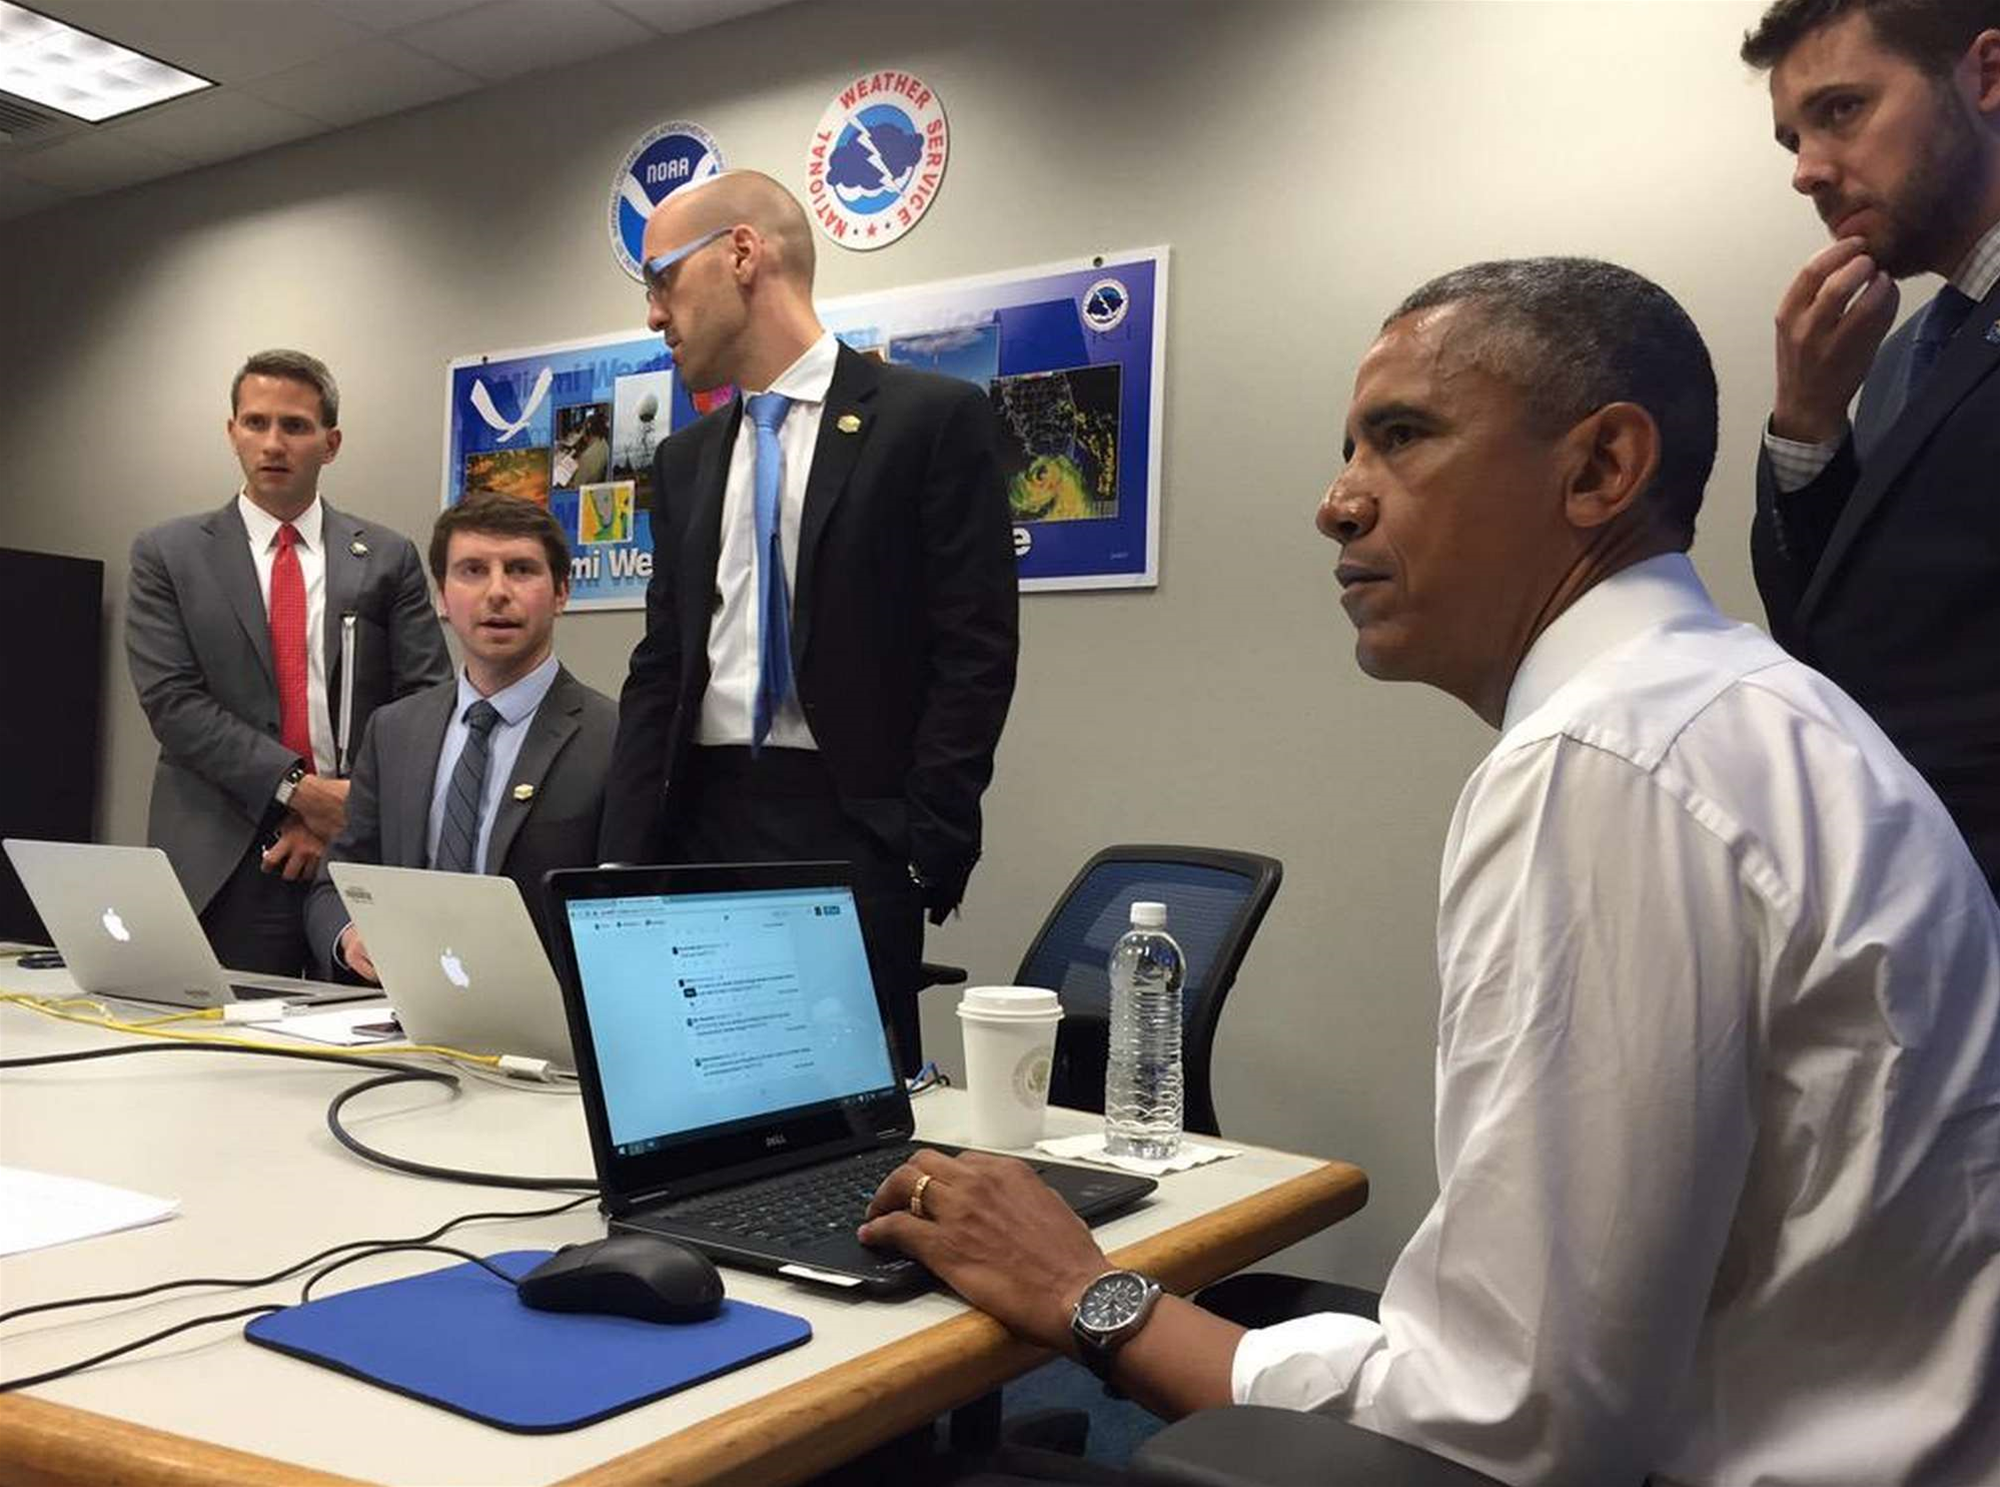 US President Obama Talks Climate Change and Basketball During Twitter Q&A